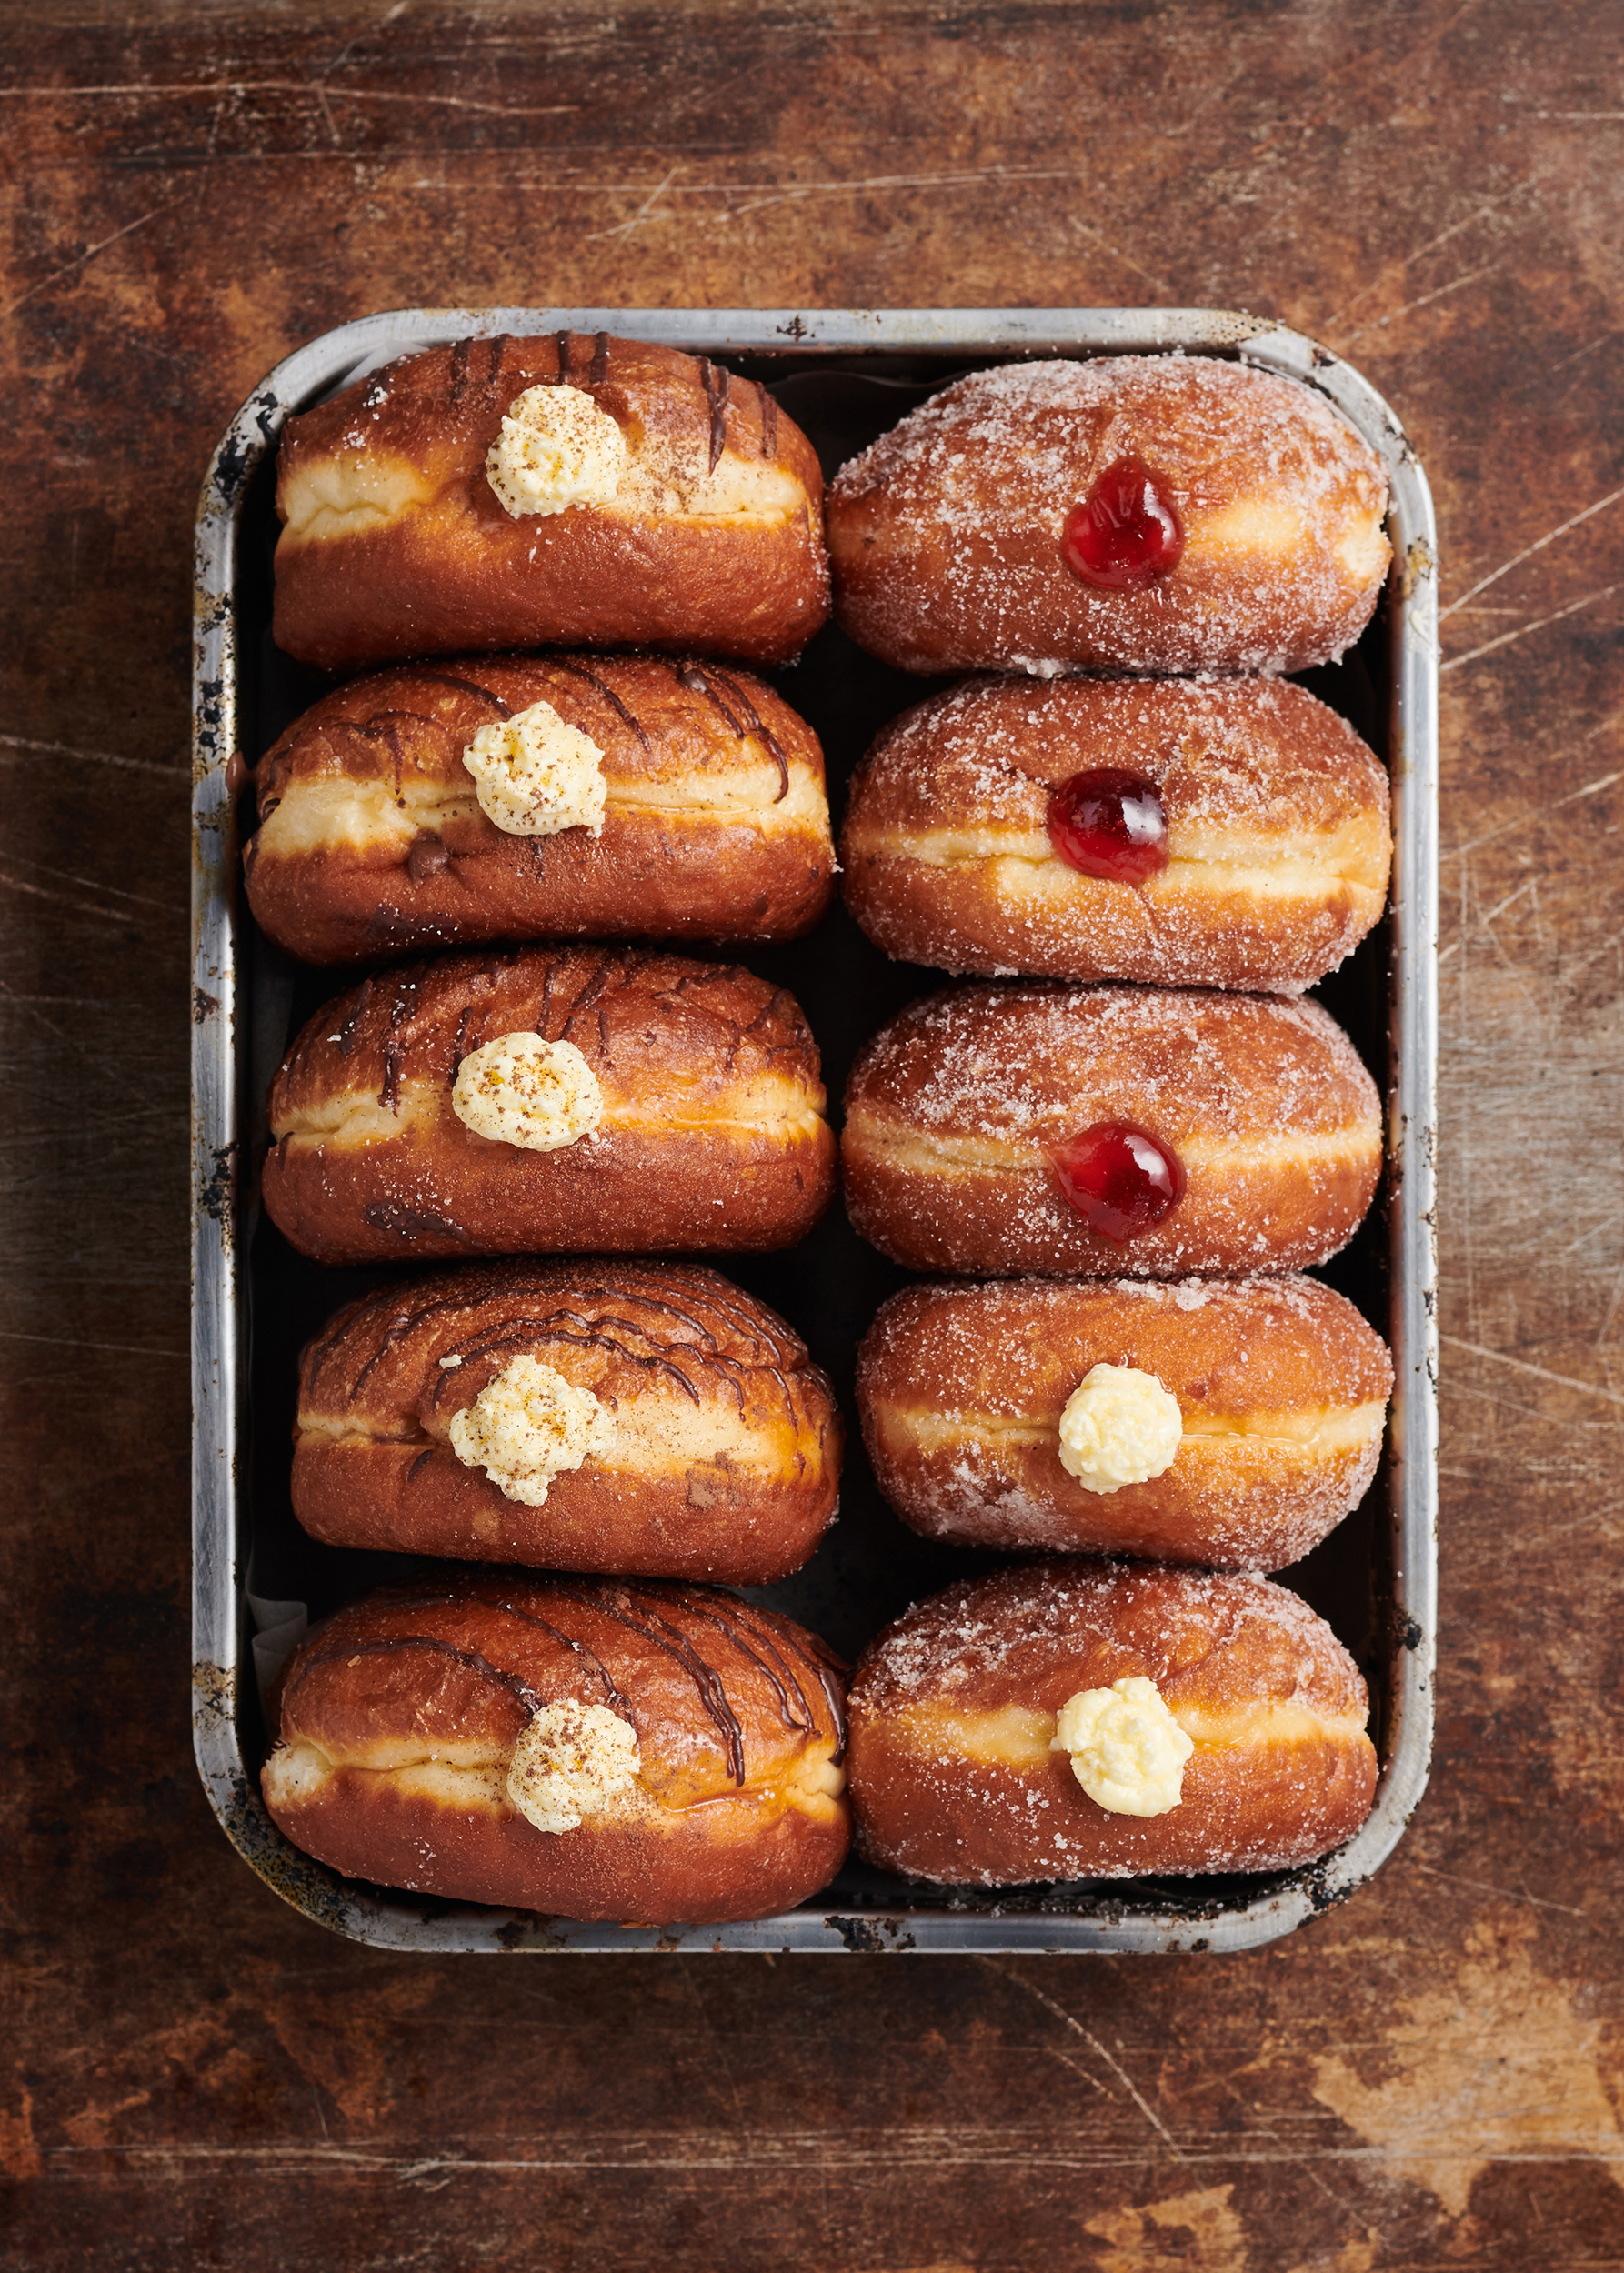 food photography of a box of jam donuts